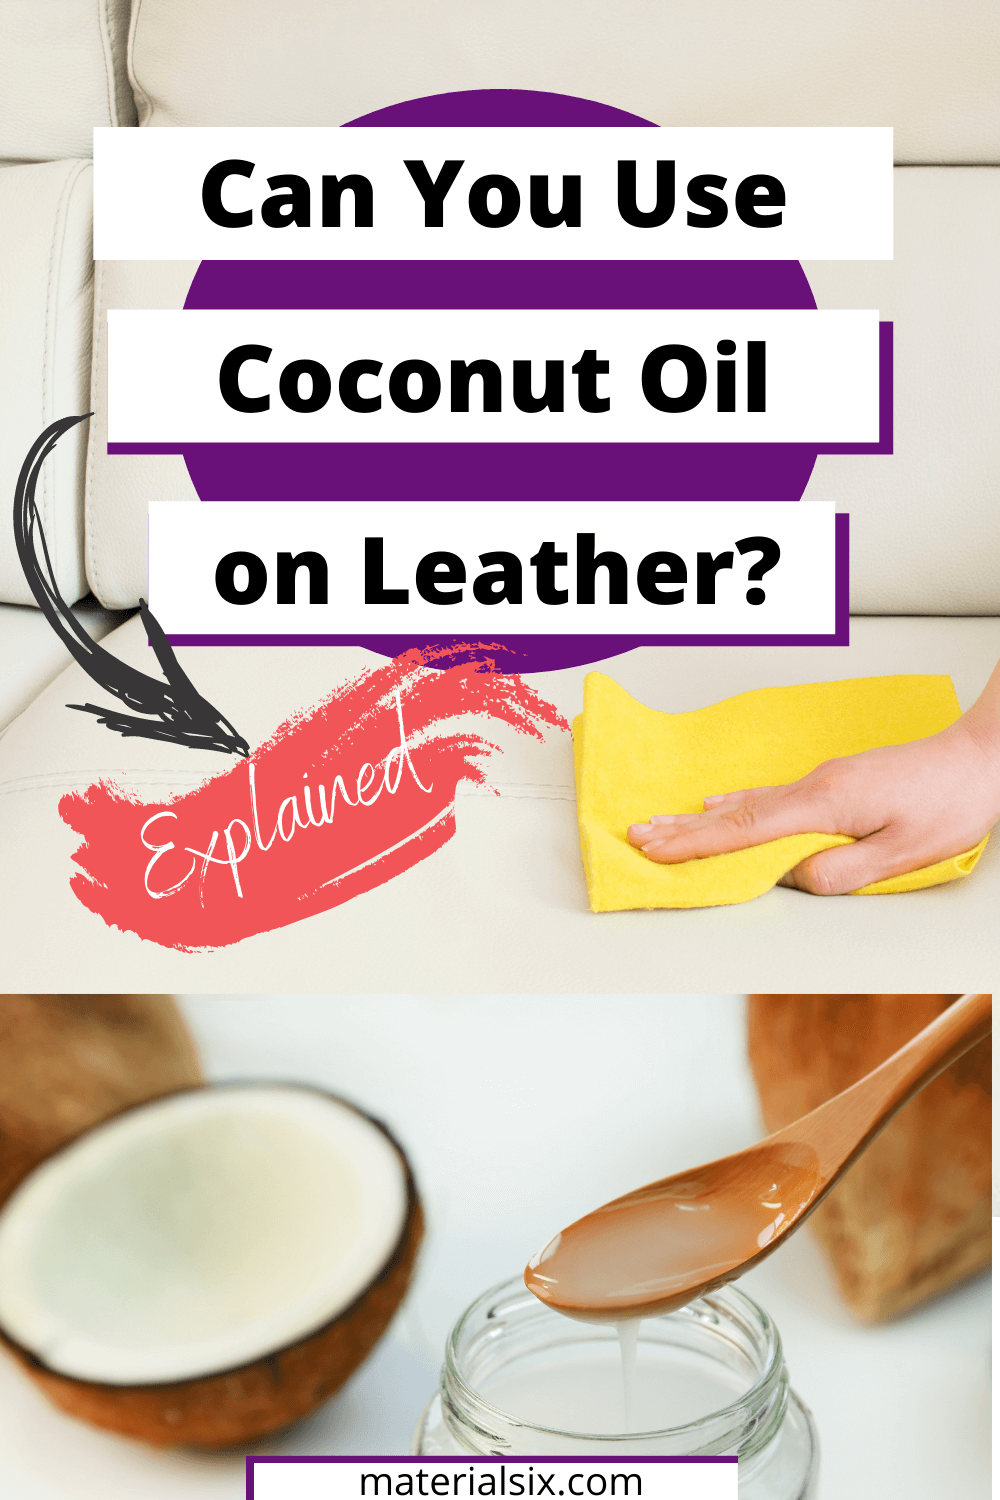 Can You Use Coconut Oil On Leather?